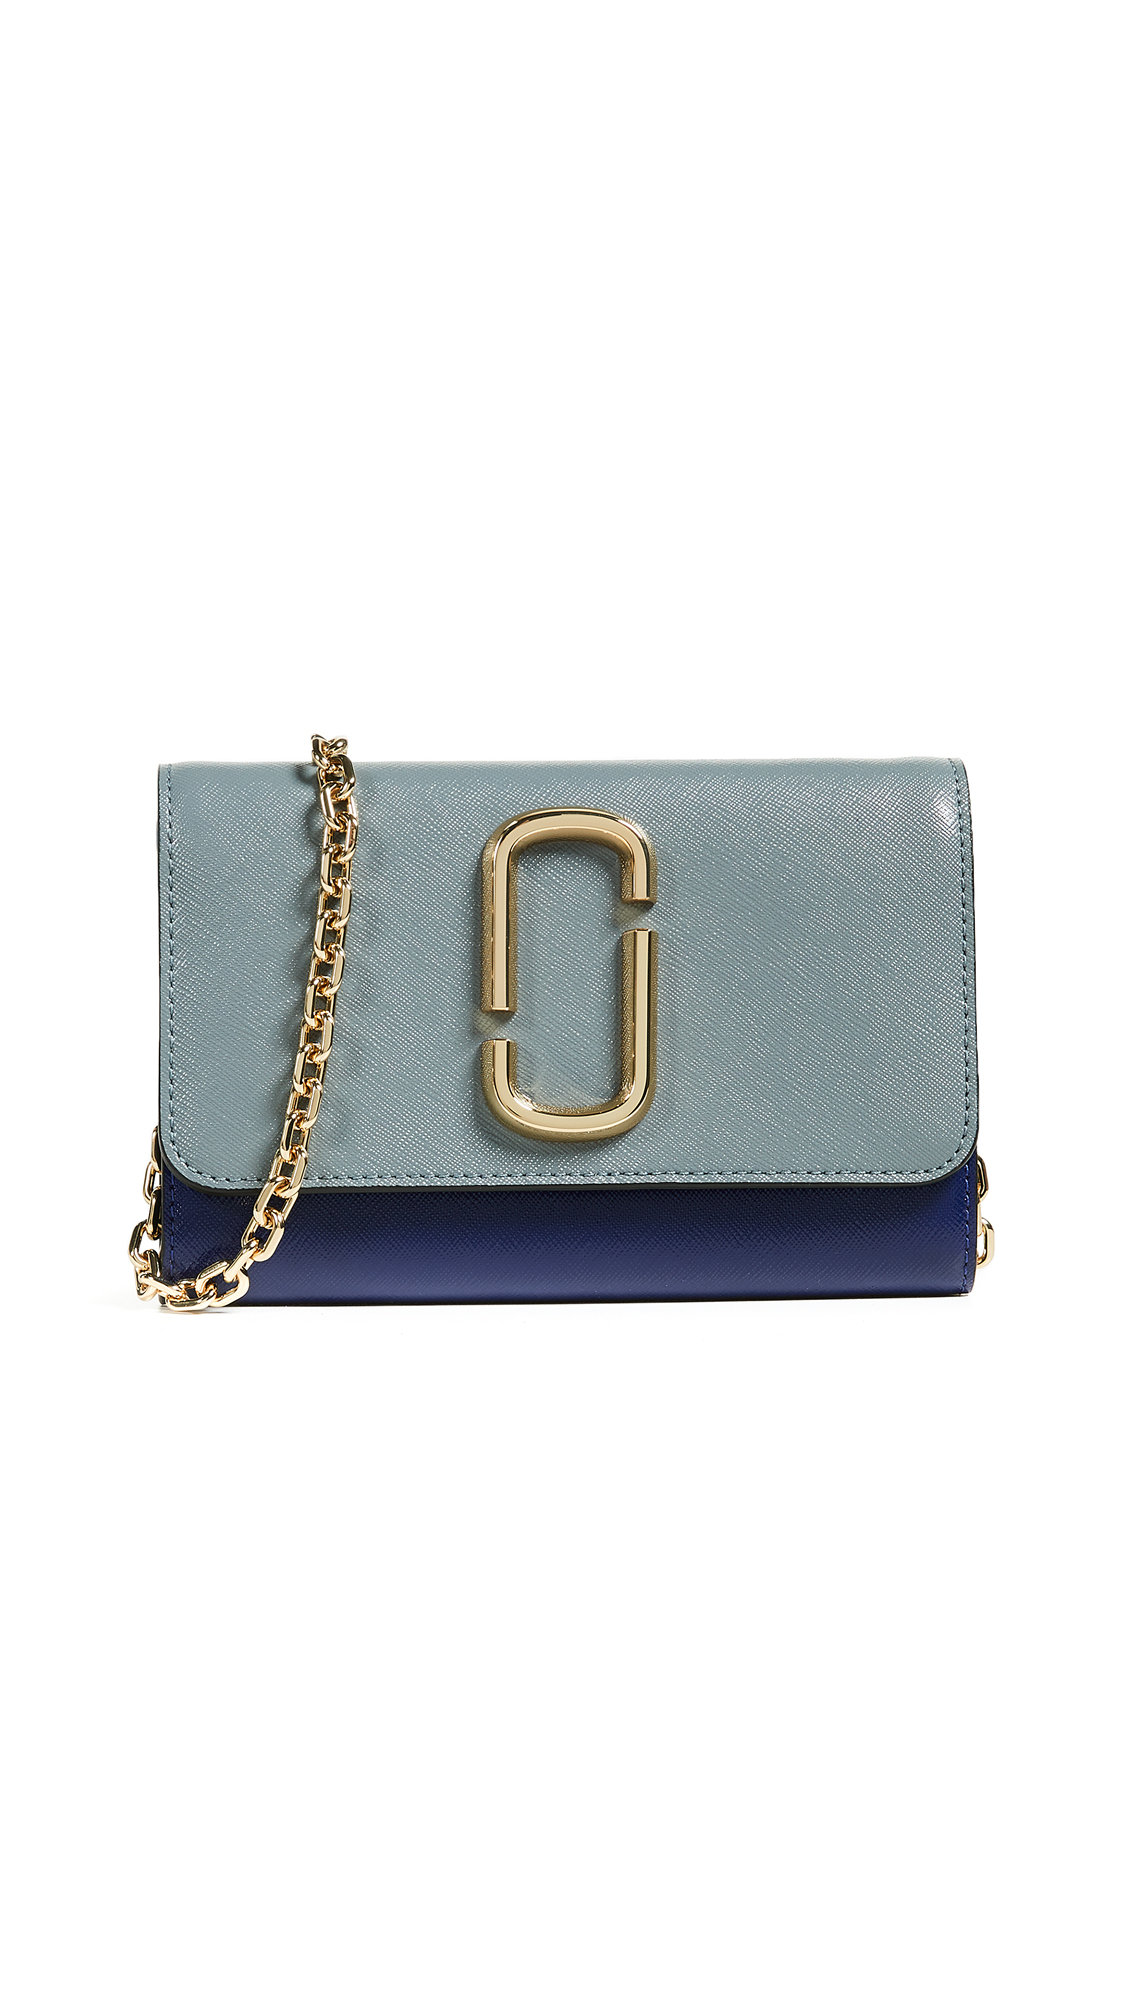 Marc Jacobs Snapshot Wallet on a Chain In Slate Multi